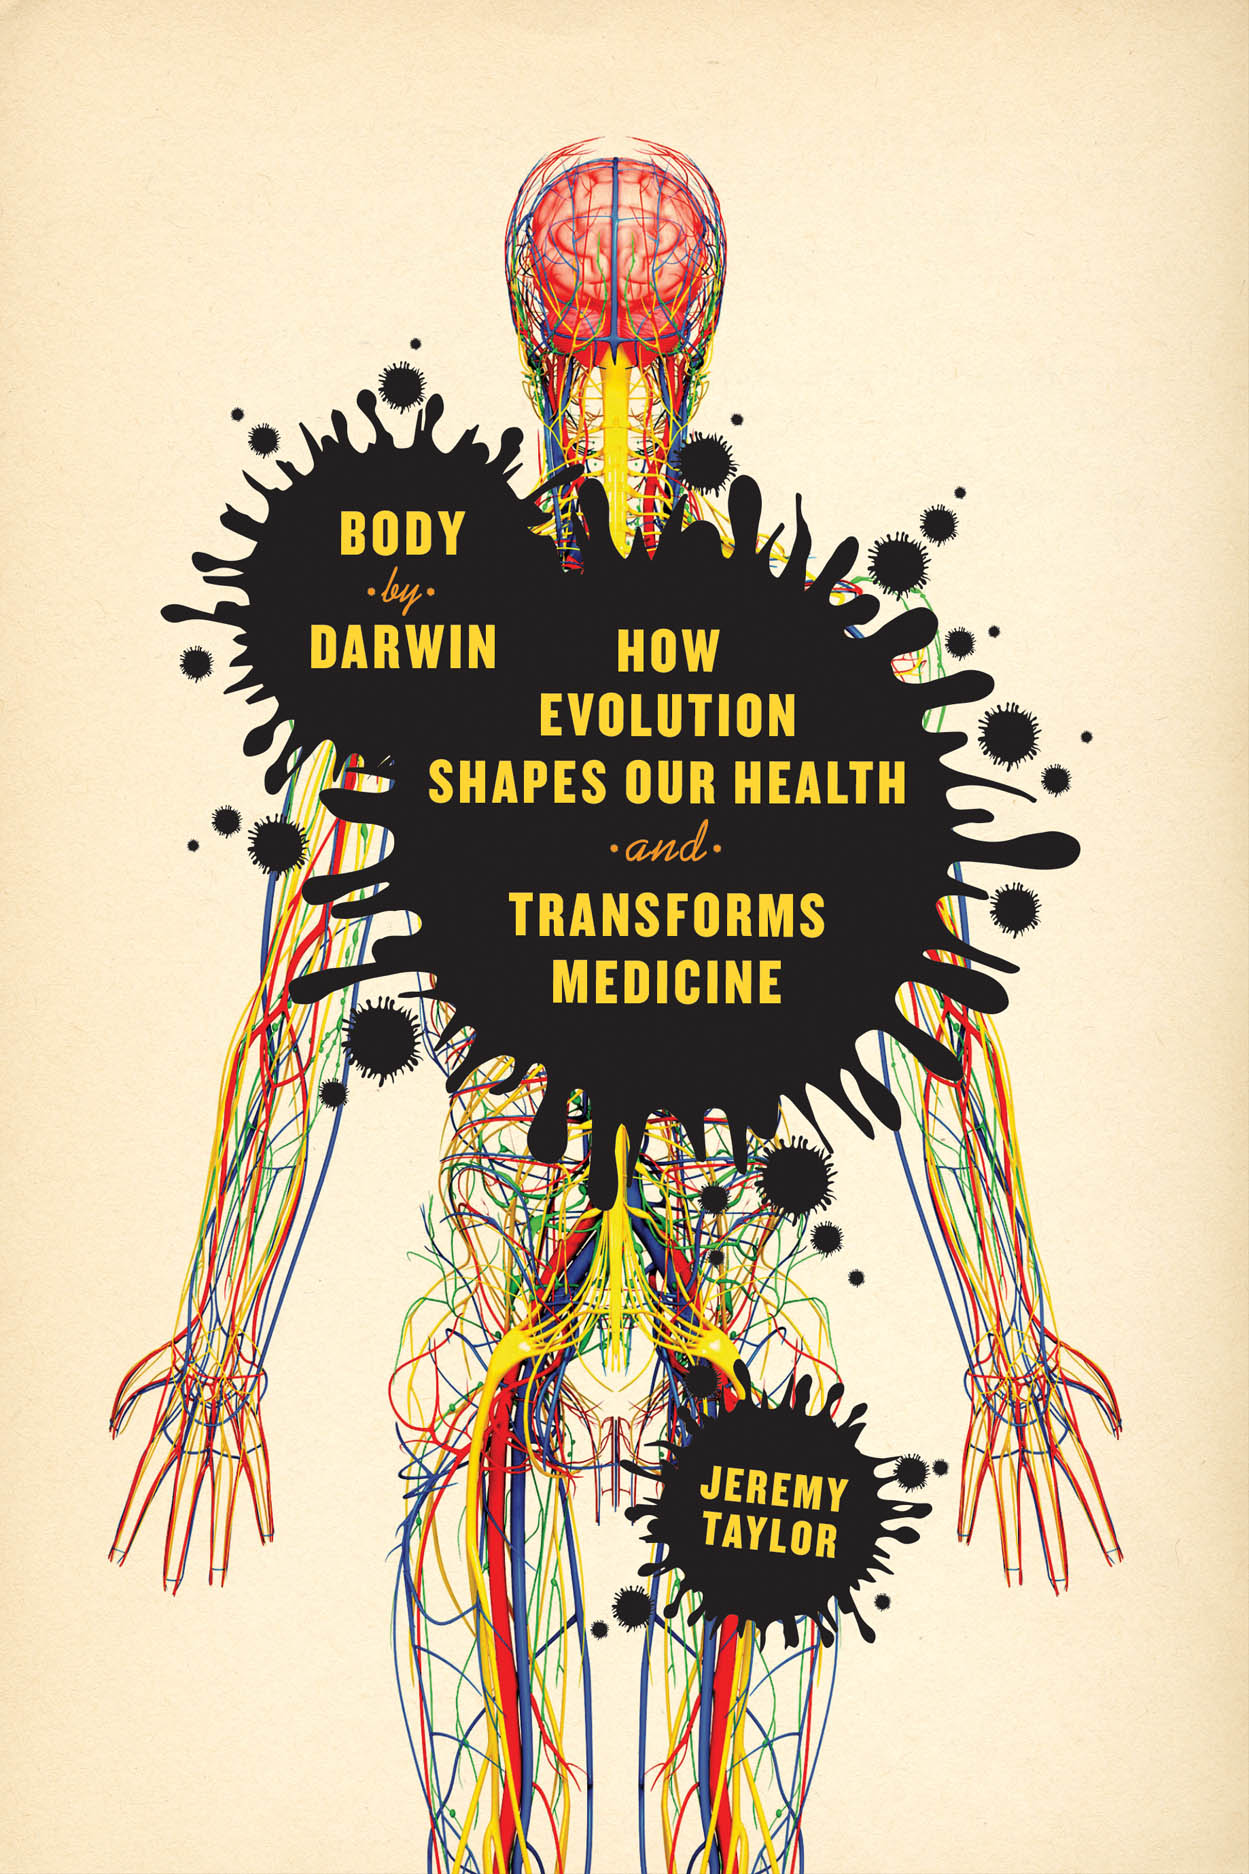 Body by Darwin: How Evolution Shapes Our Health and Transforms Medicine